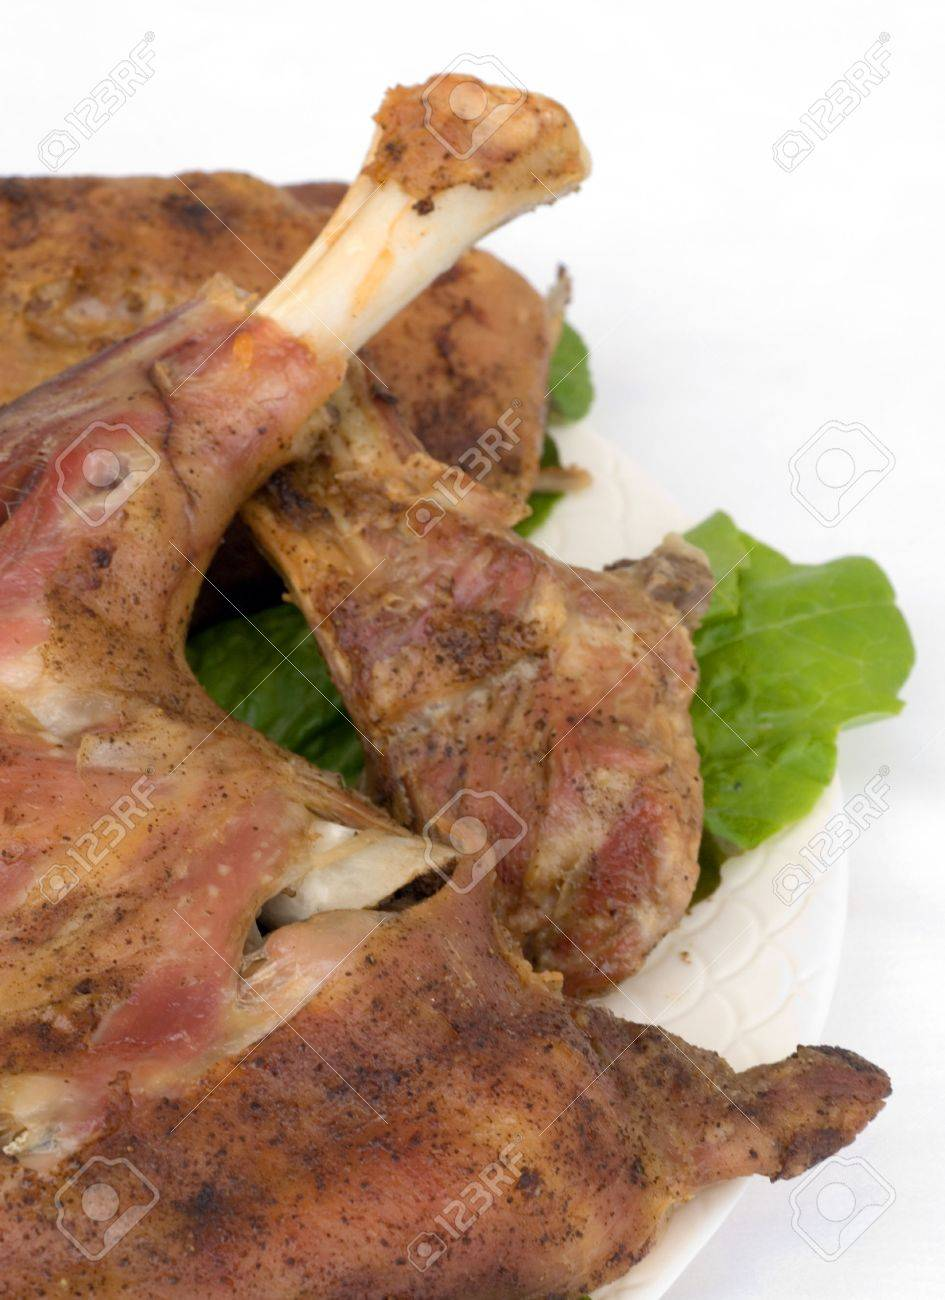 Grilled goat-meat ready to serve